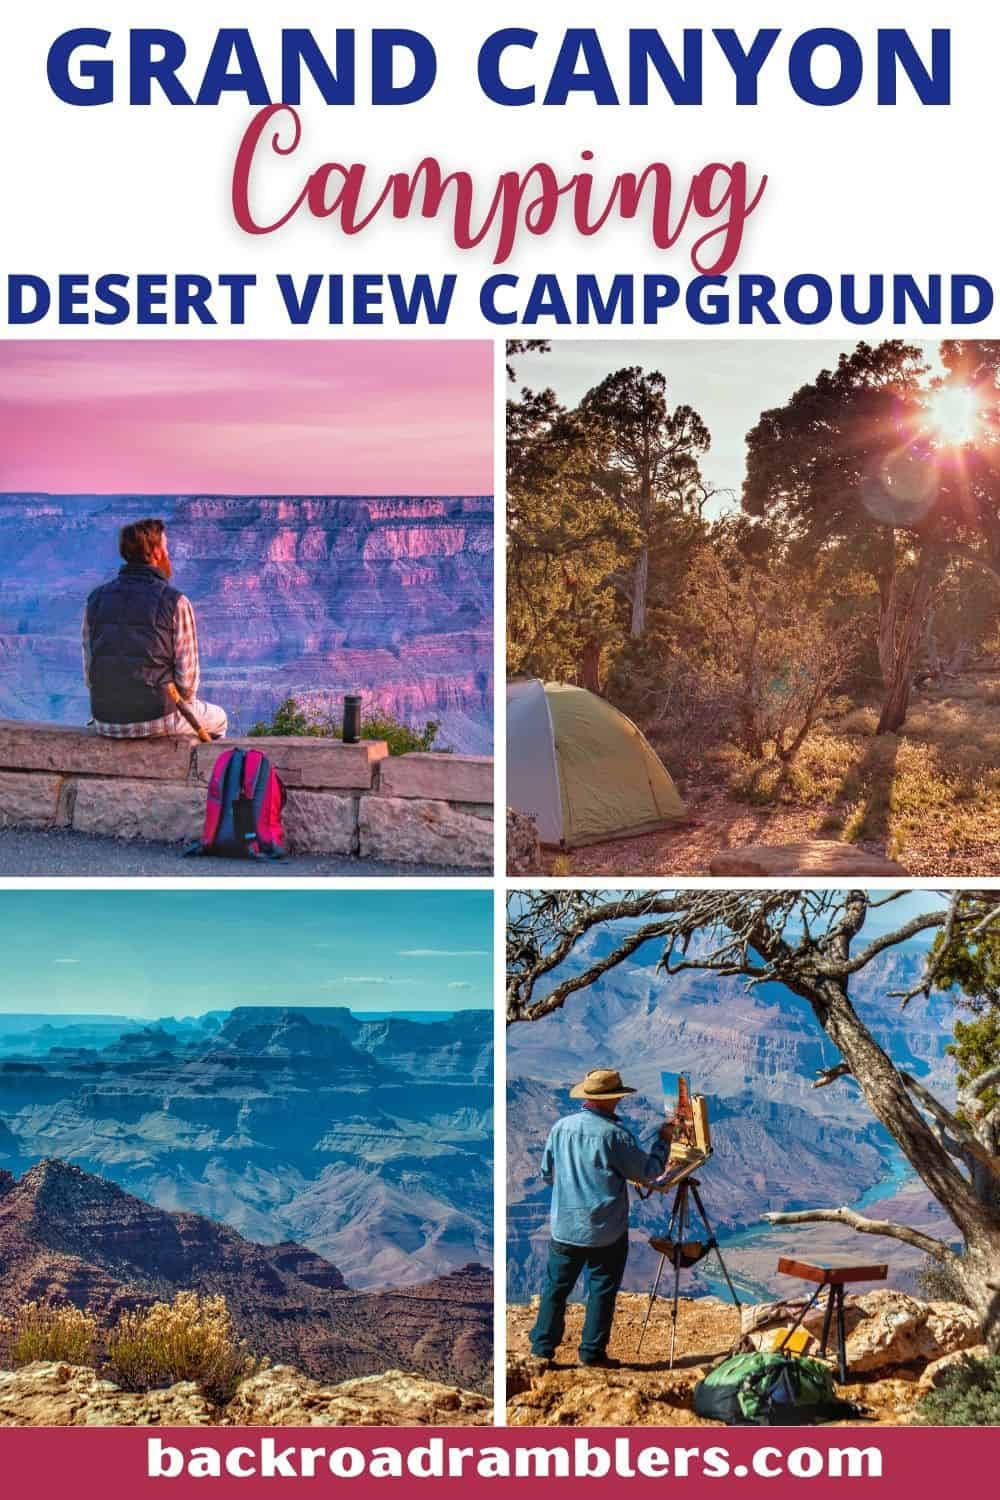 A collage of photos from Grand Canyon National Park. Caption reads: Grand Canyon Camping at Desert View Campground